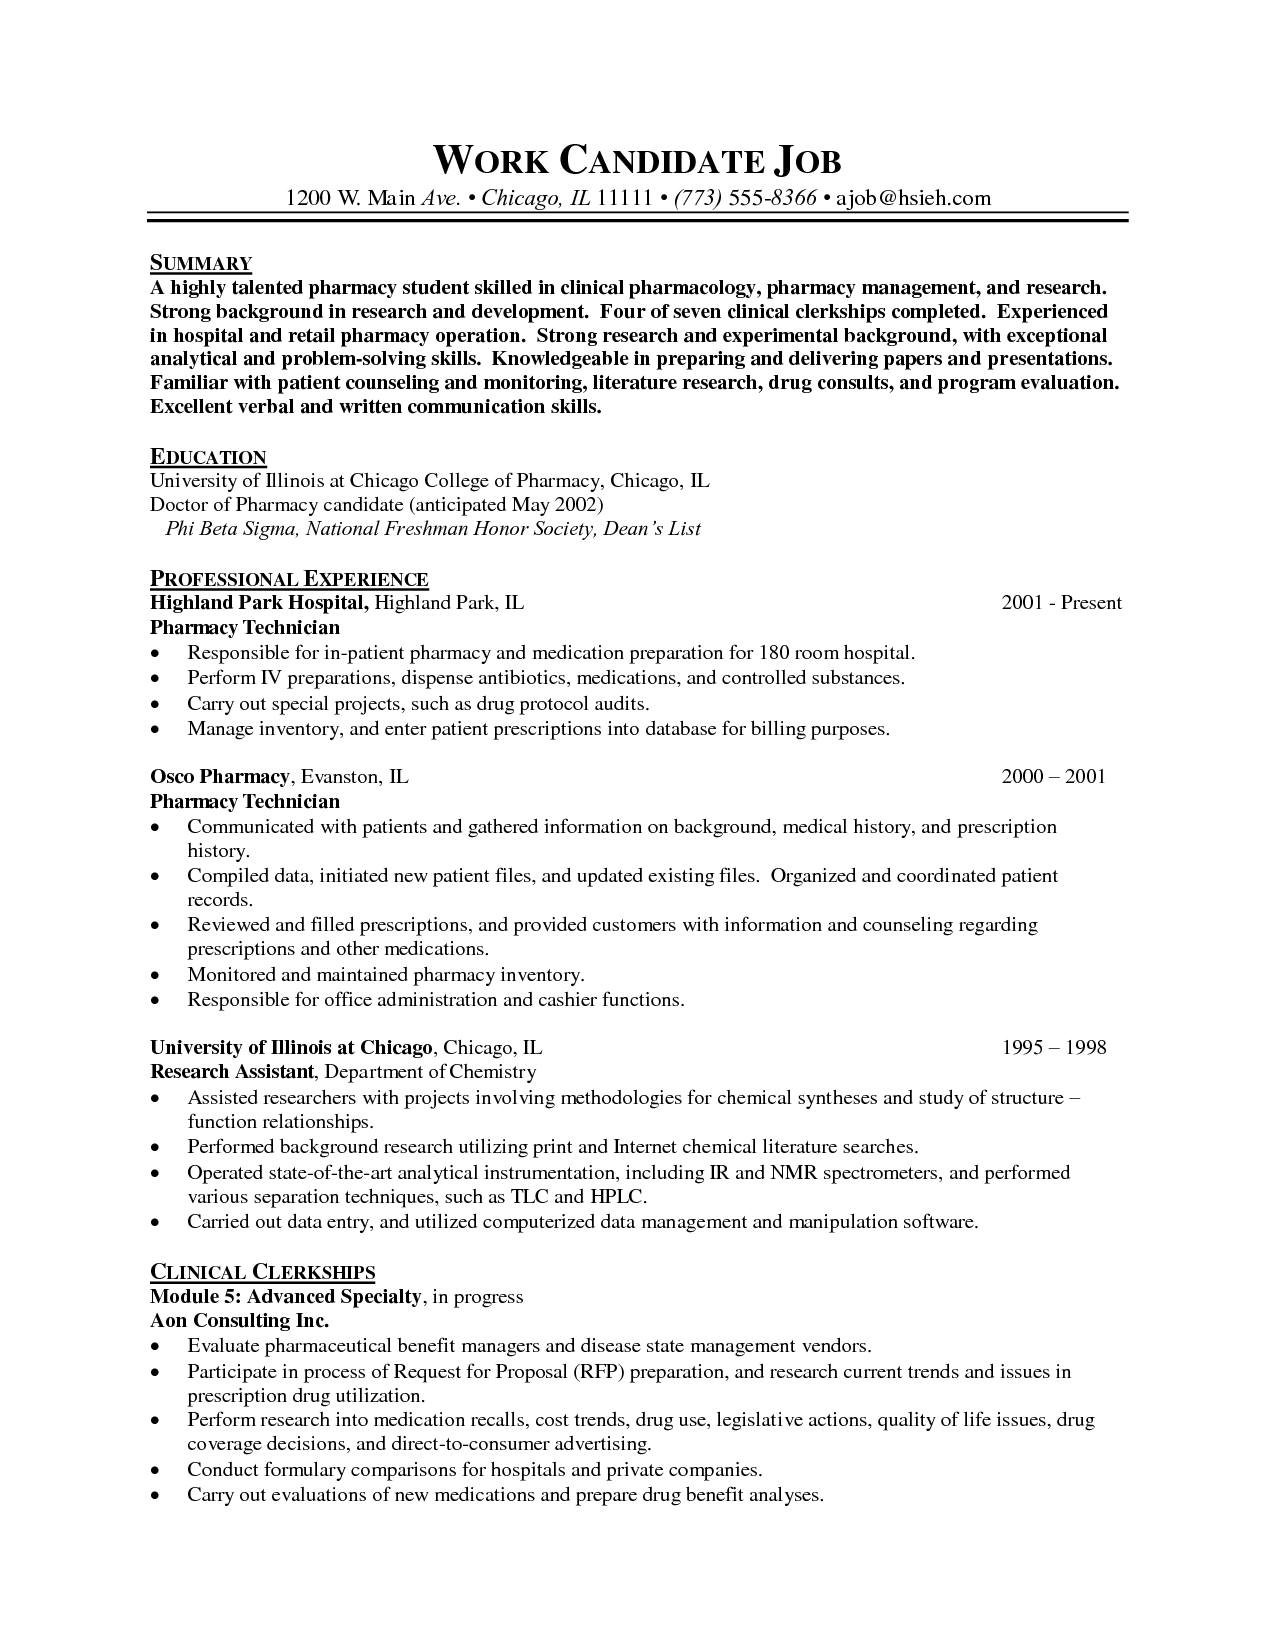 professional resume cover letter sample get instant risk free access to the full cover letter samplepharmacy technicianresume - Pharmacy Assistant Resume Sample